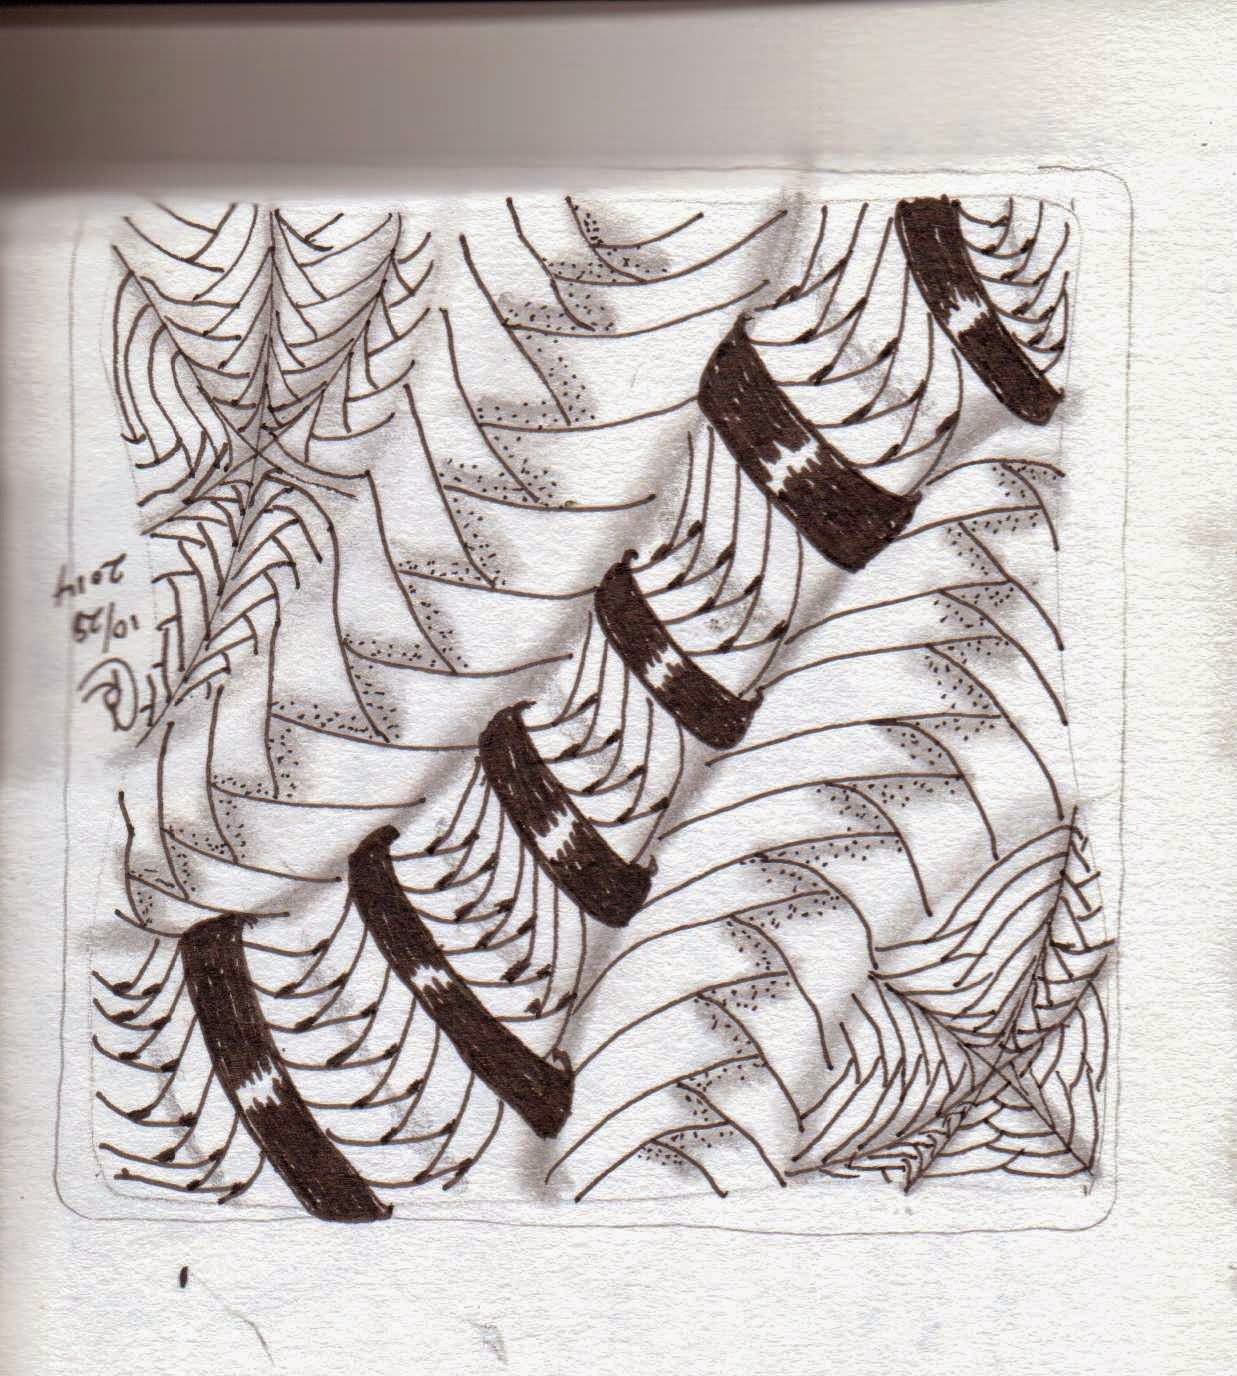 http://cherylsartfulcreations.blospot.com certified zentangle teacher